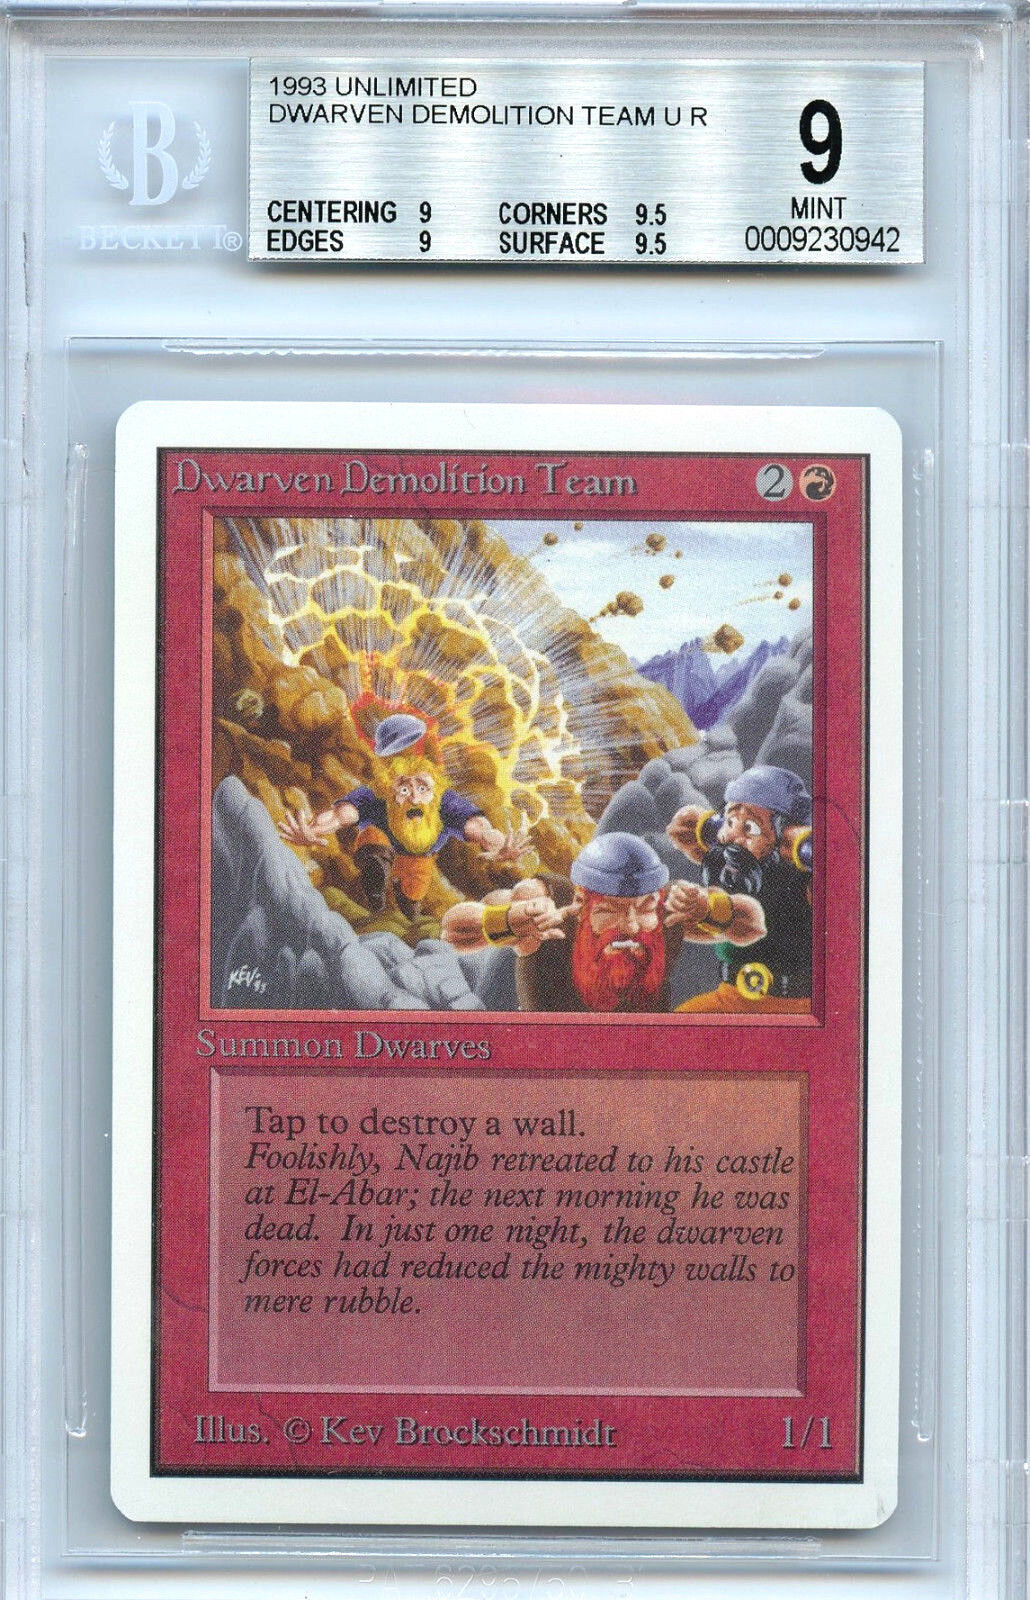 Mtg unbegrenzt demoution team um magic wotc bgs 9,0 (9) - karte 0942